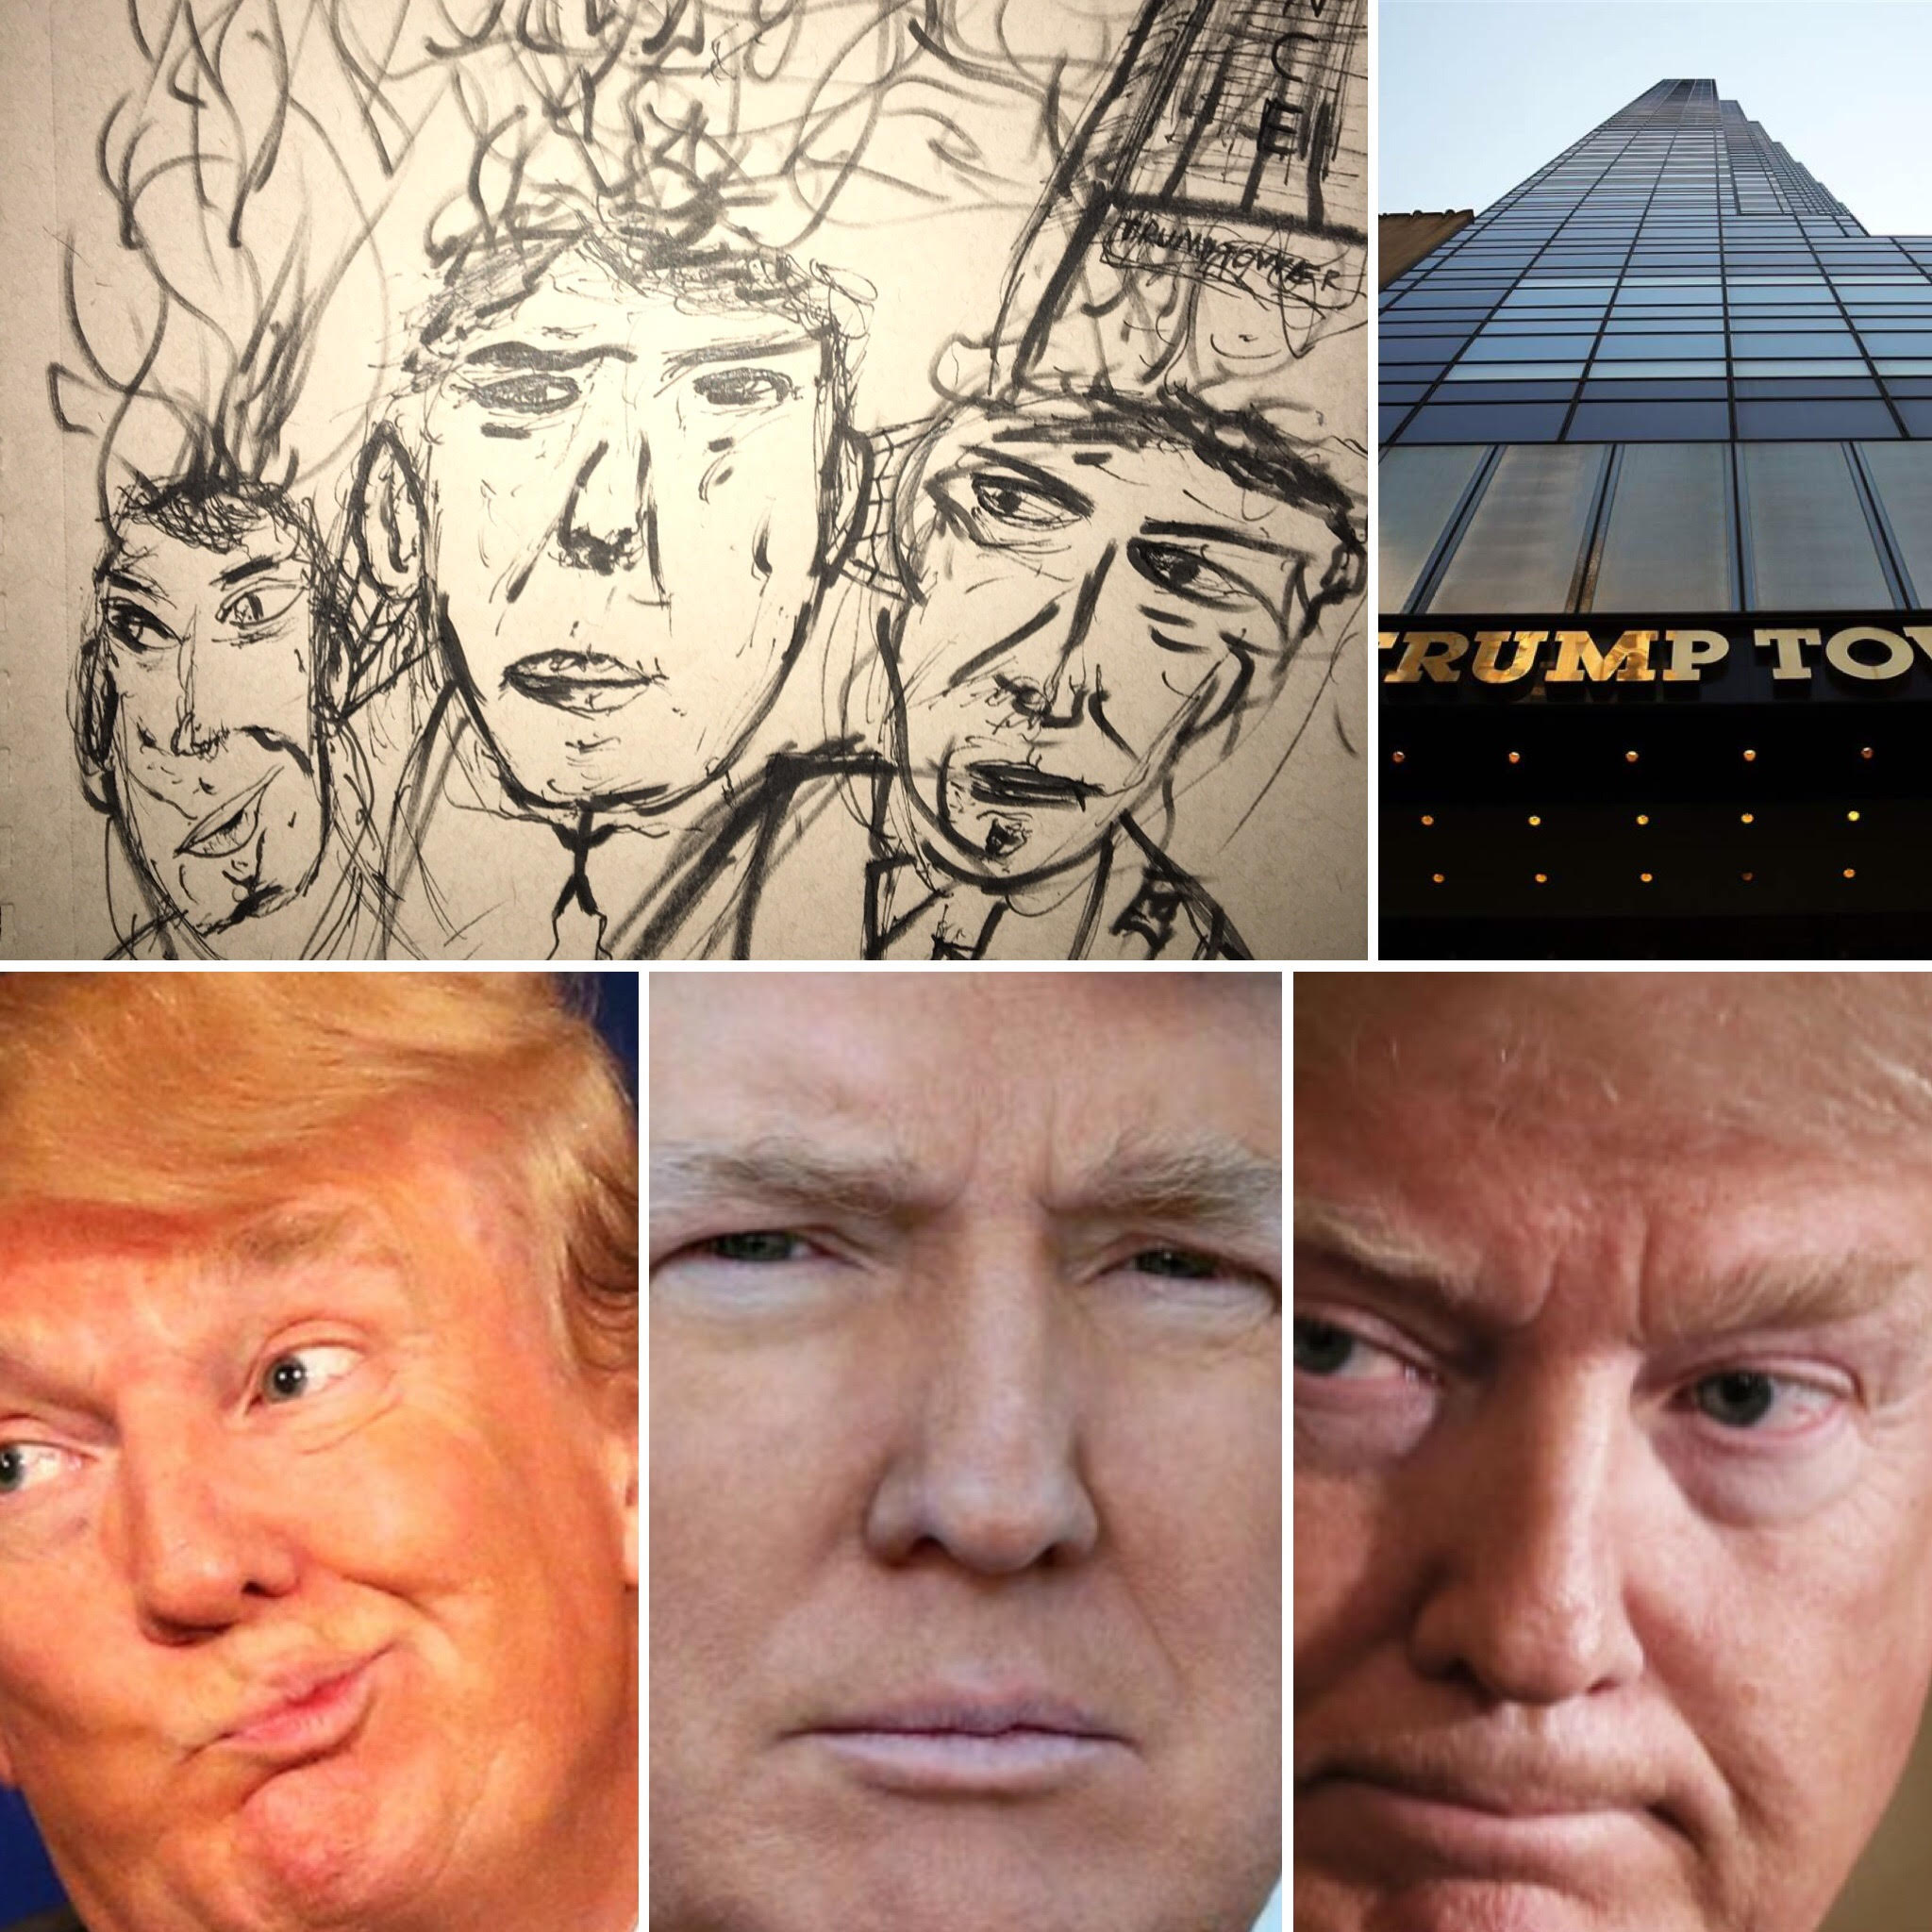 The Many Ugly Faces of Donald Trump - Ugly Sketches of Ugly People